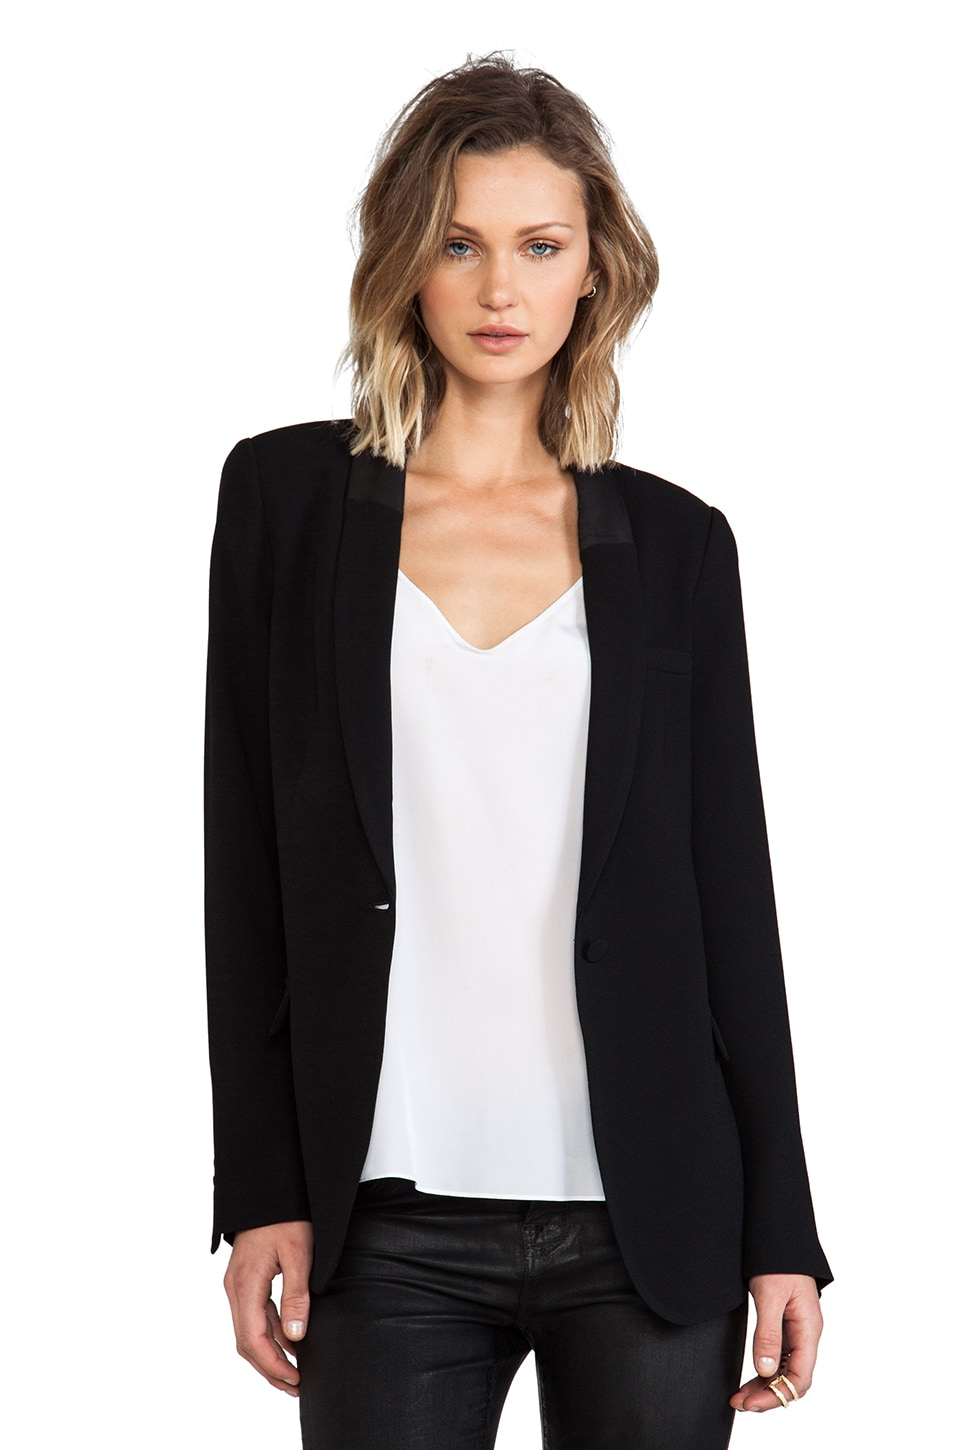 Hudson Jeans Blazer NO. 9 in Raw Black